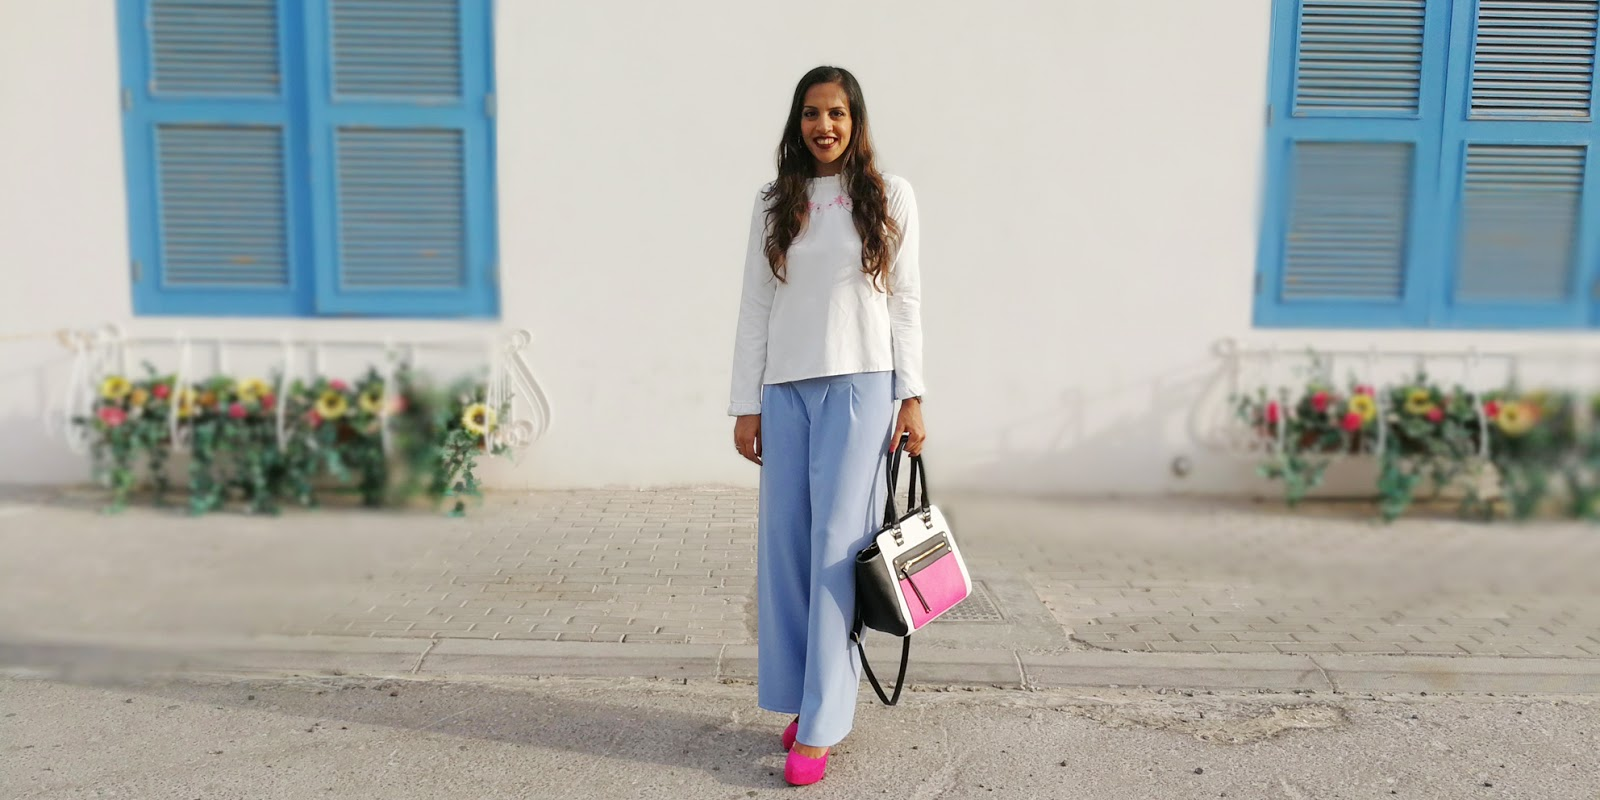 Baby Blue and Pink in a Soft Feminine Look + Life/ Blogging Update